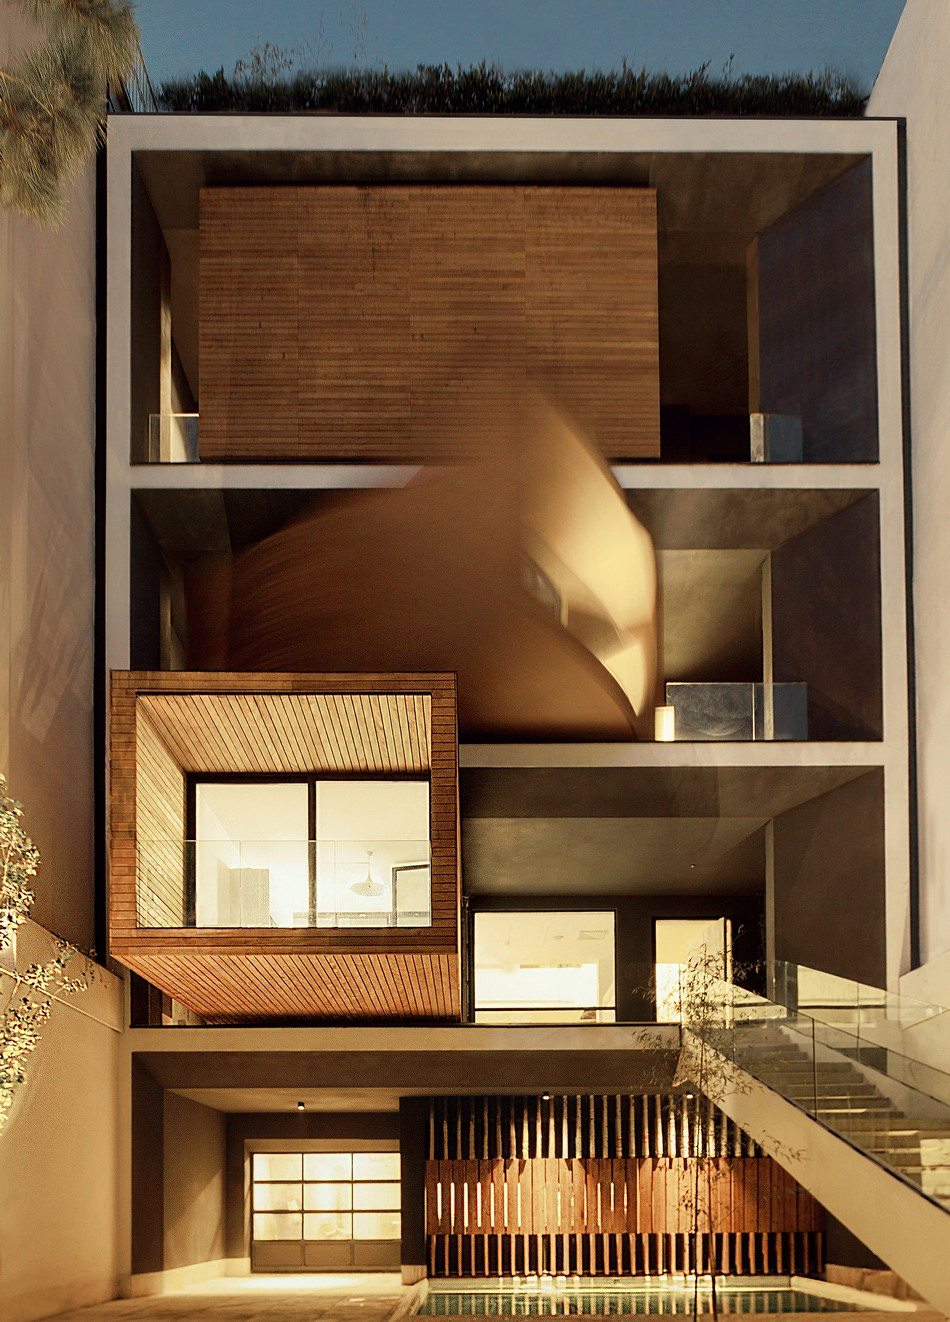 Innovative turning boxes adapting sharifi ha house to the climate changes of tehran